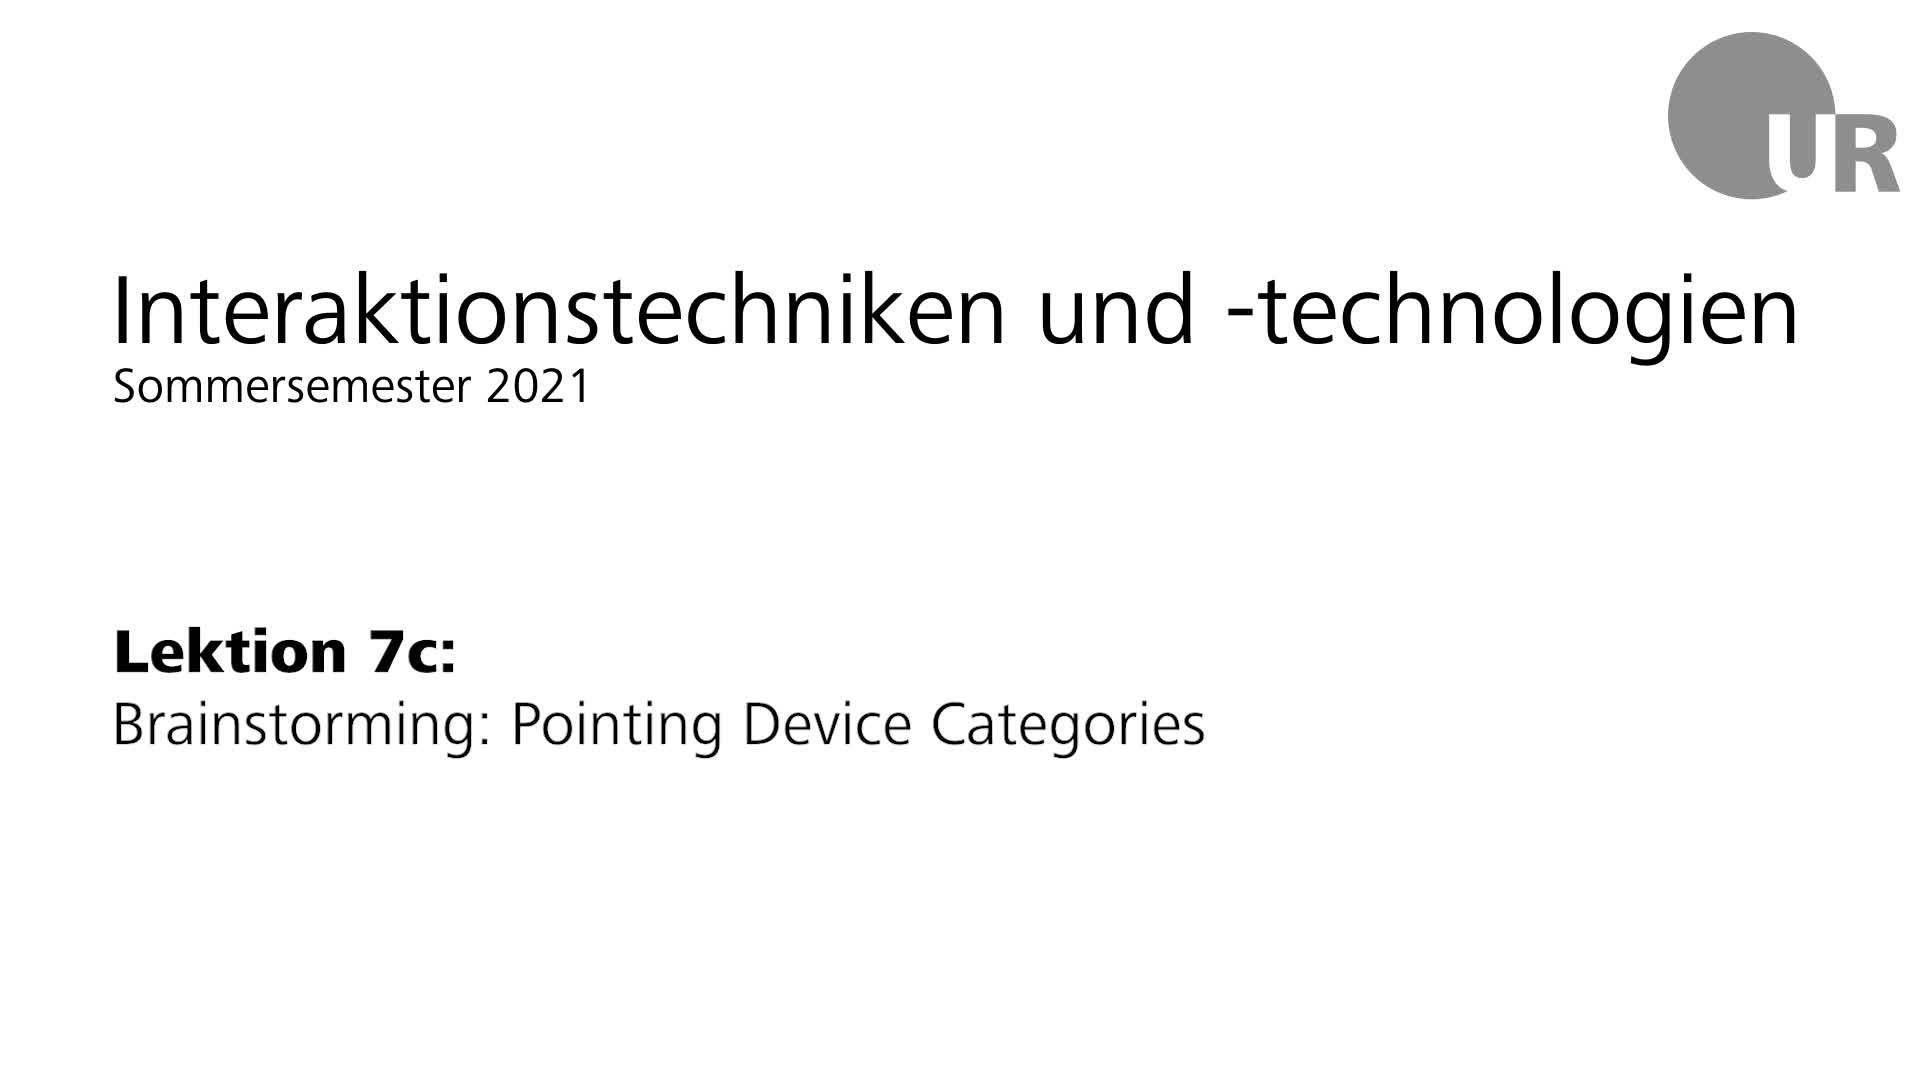 Lektion 7c: Brainstorming: Pointing Device Categories